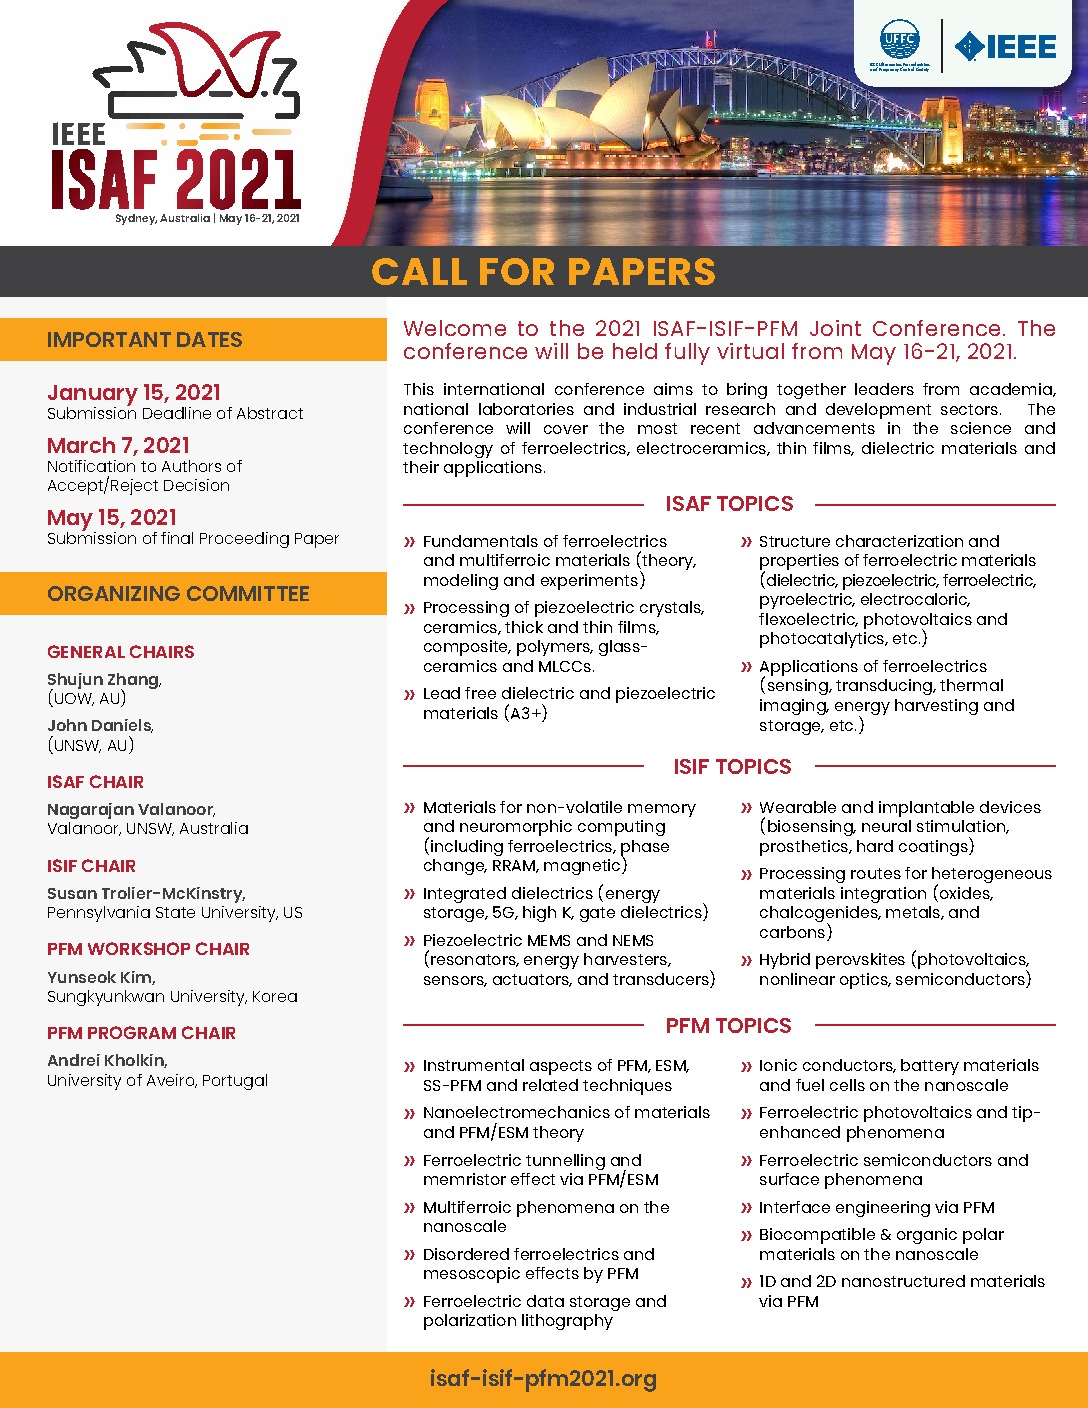 thumbnail of isaf2021-cfp_web-10